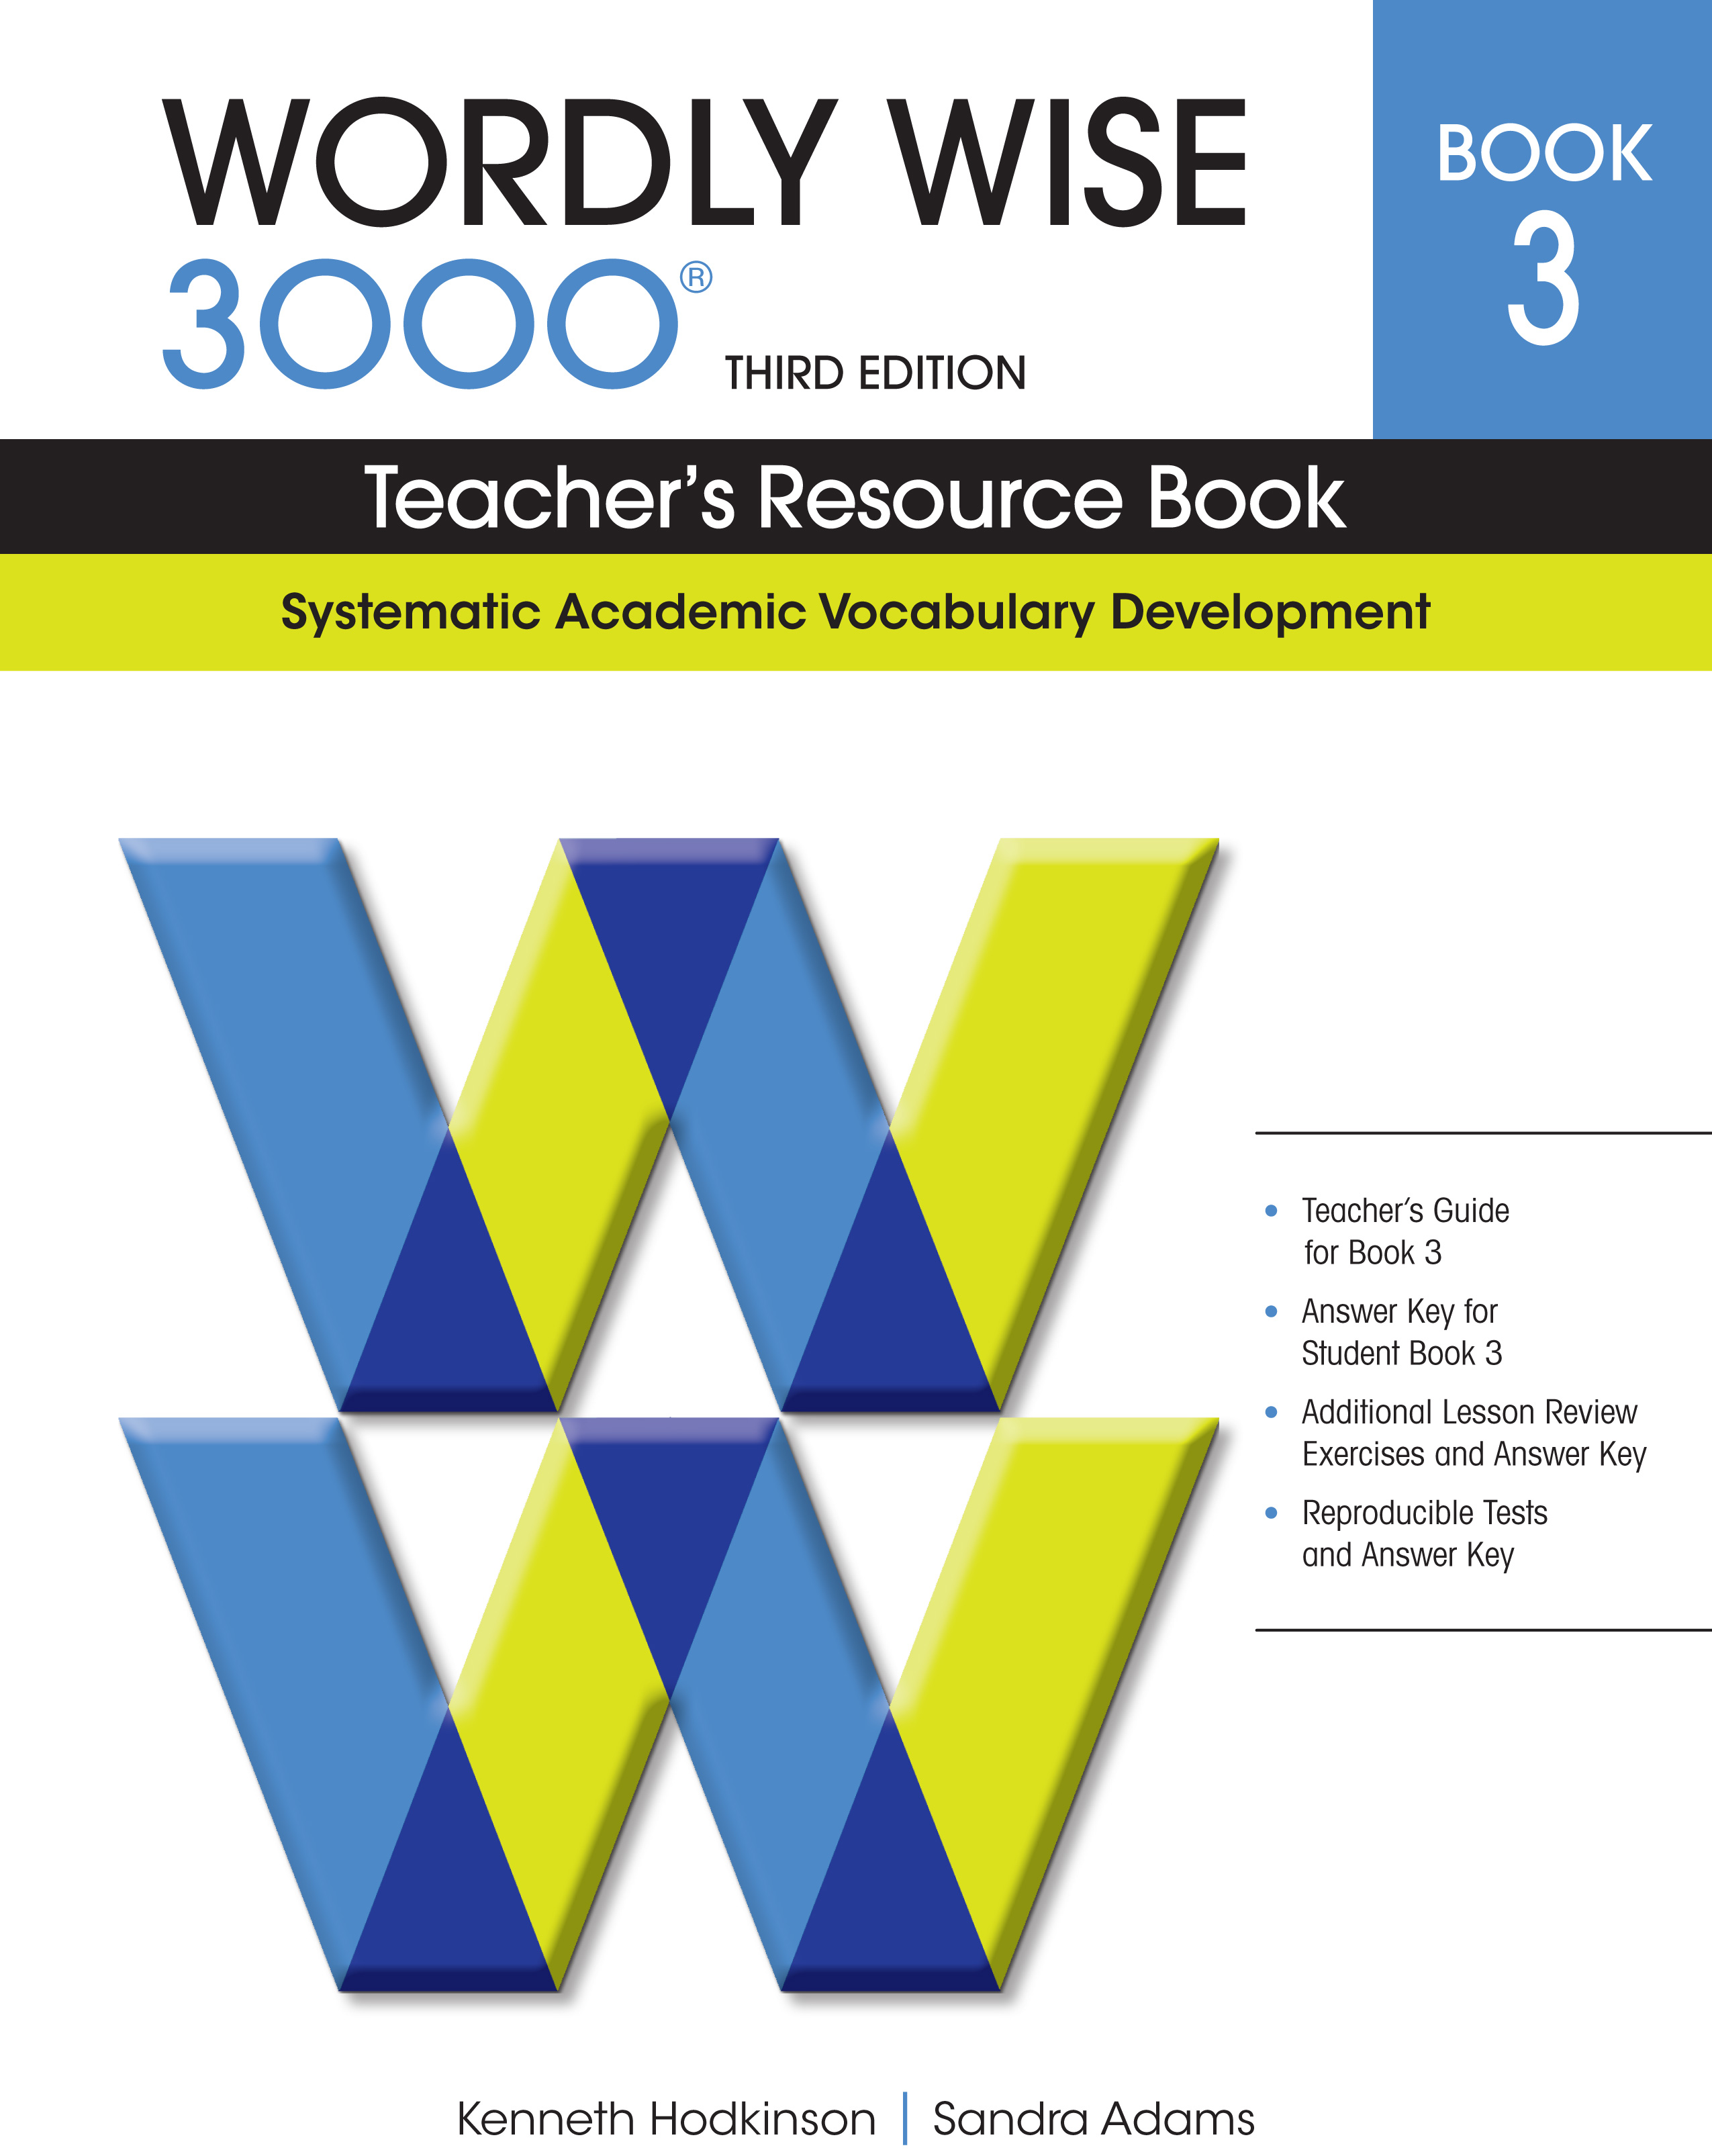 wordly wise 3000 login Pricing | Wordly Wise 3000® 3rd edition | School Specialty | EPS